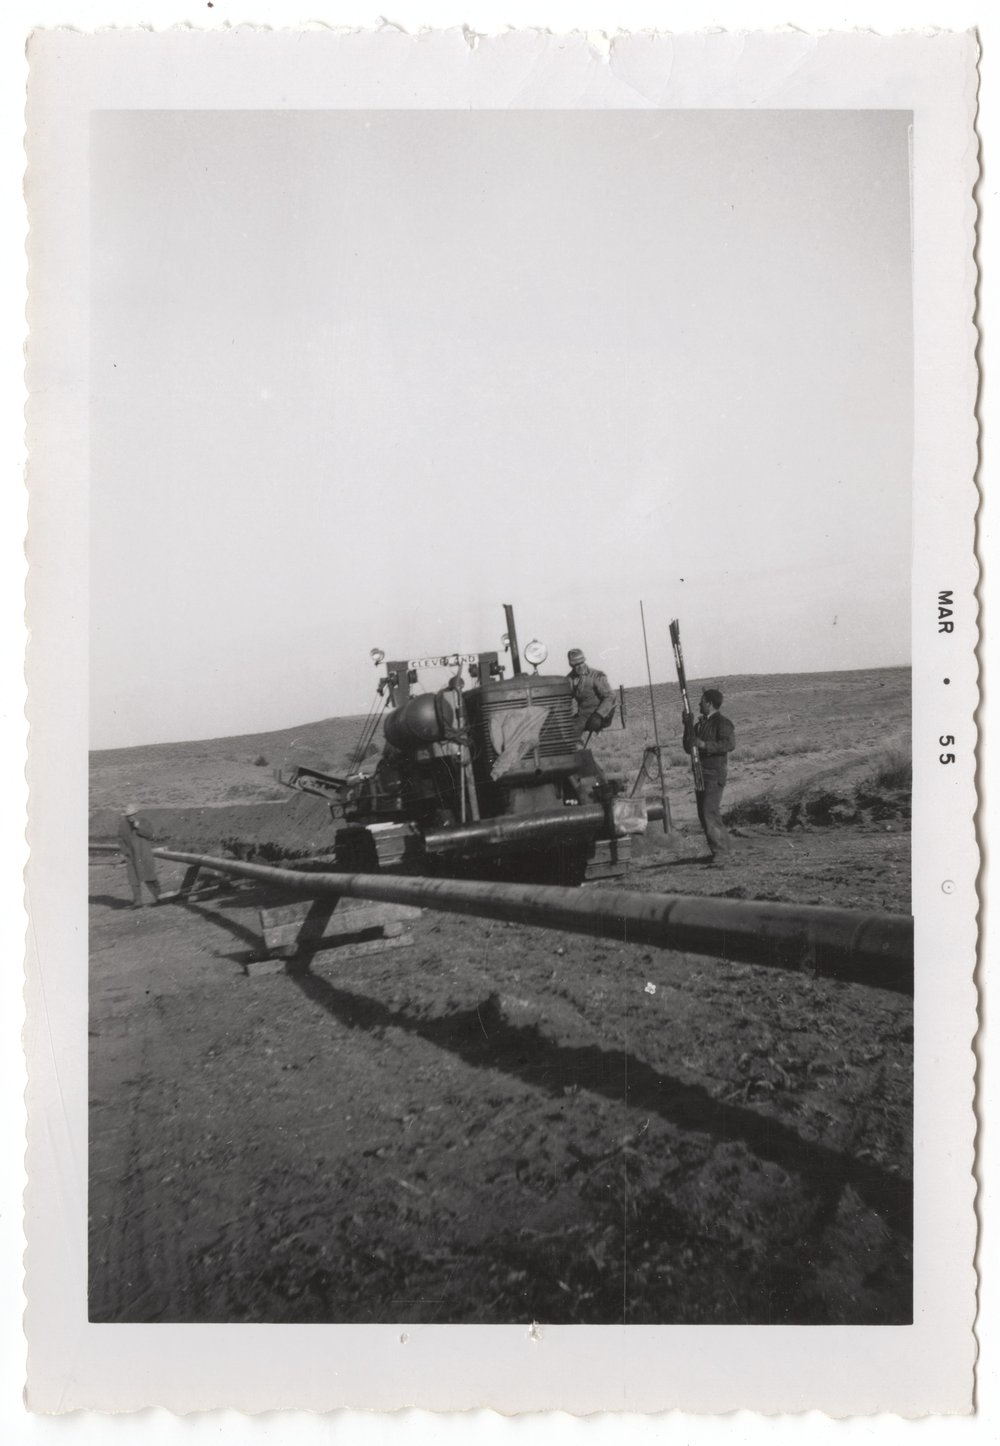 A gas line on the Mahan-Tarr ranch in Barber County, Kansas - 1